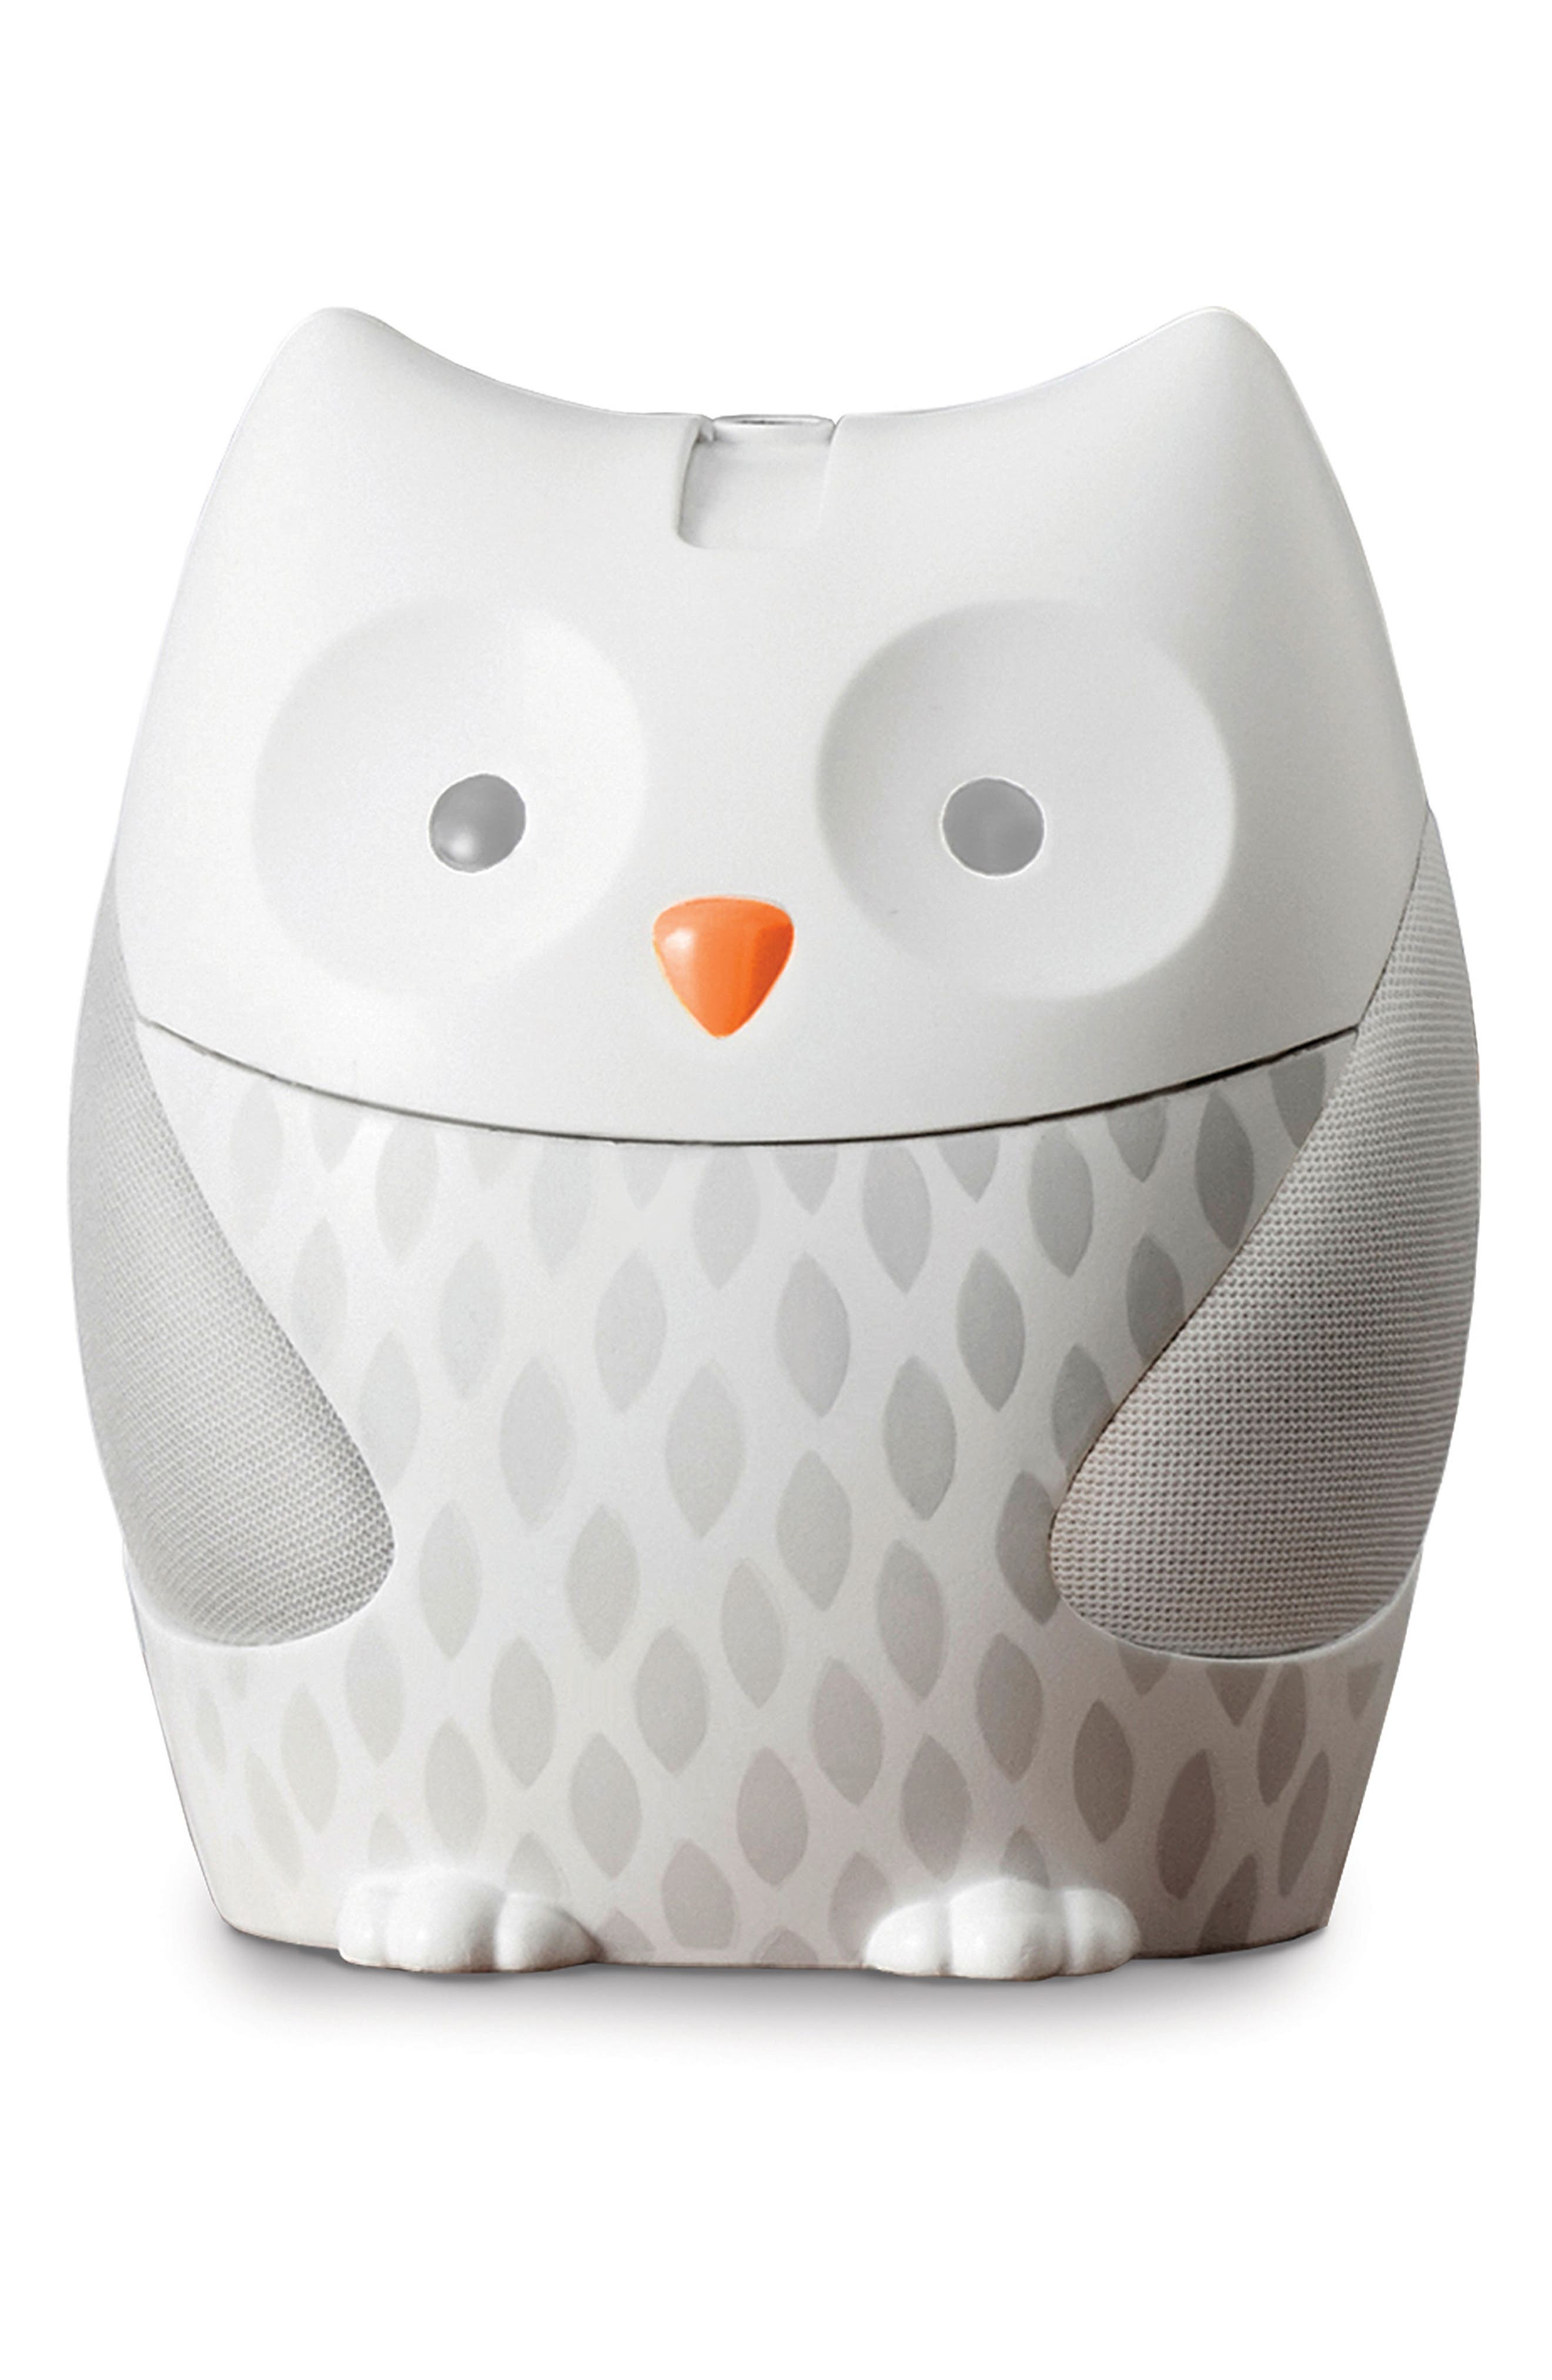 Owl Nightlight Soother,                             Main thumbnail 1, color,                             WHITE